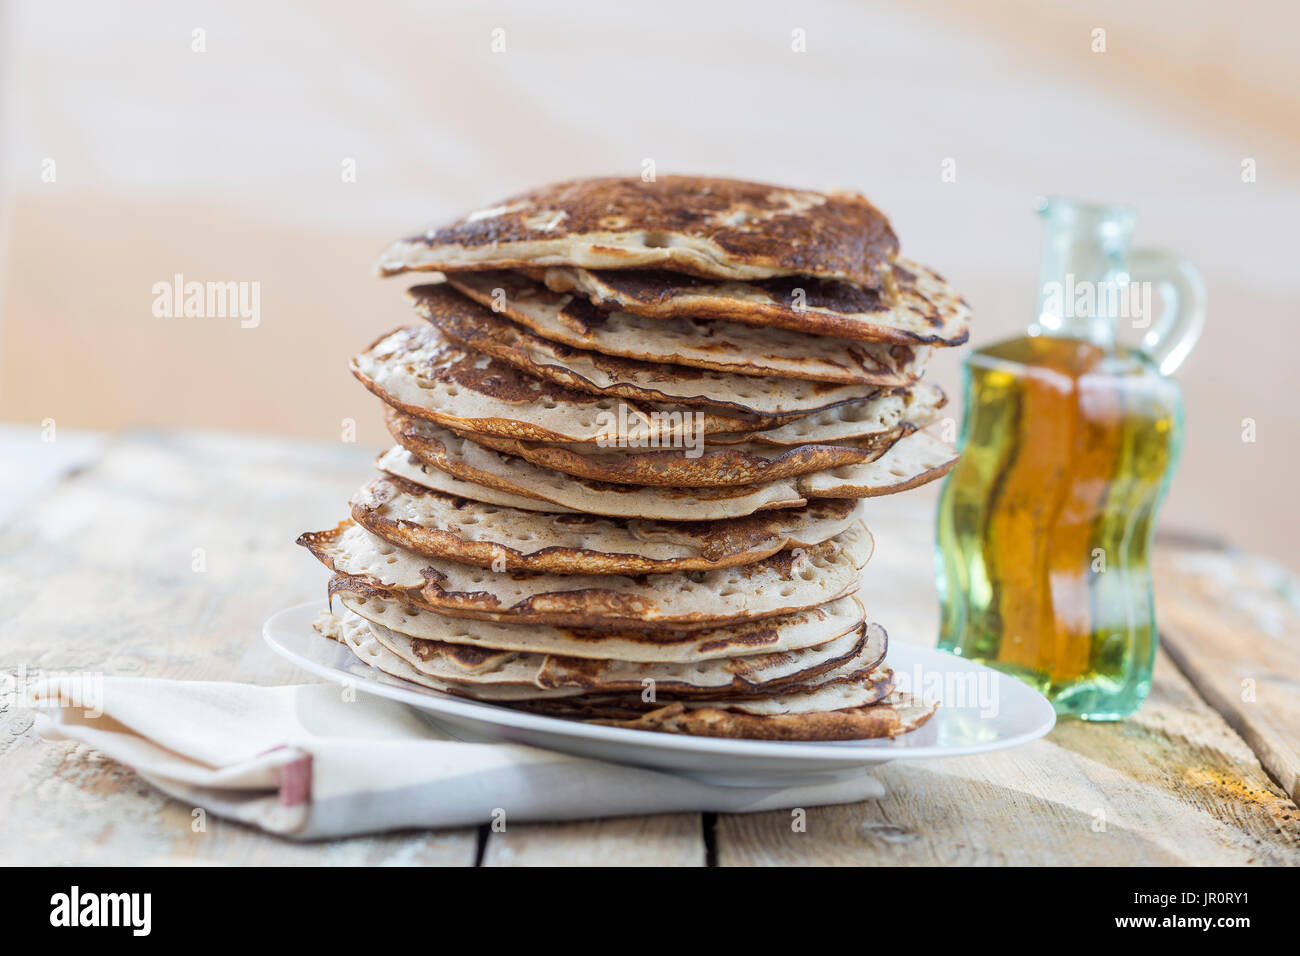 Glutten-free pancakes with jam and Maple syrup, ingredients, background - Stock Image